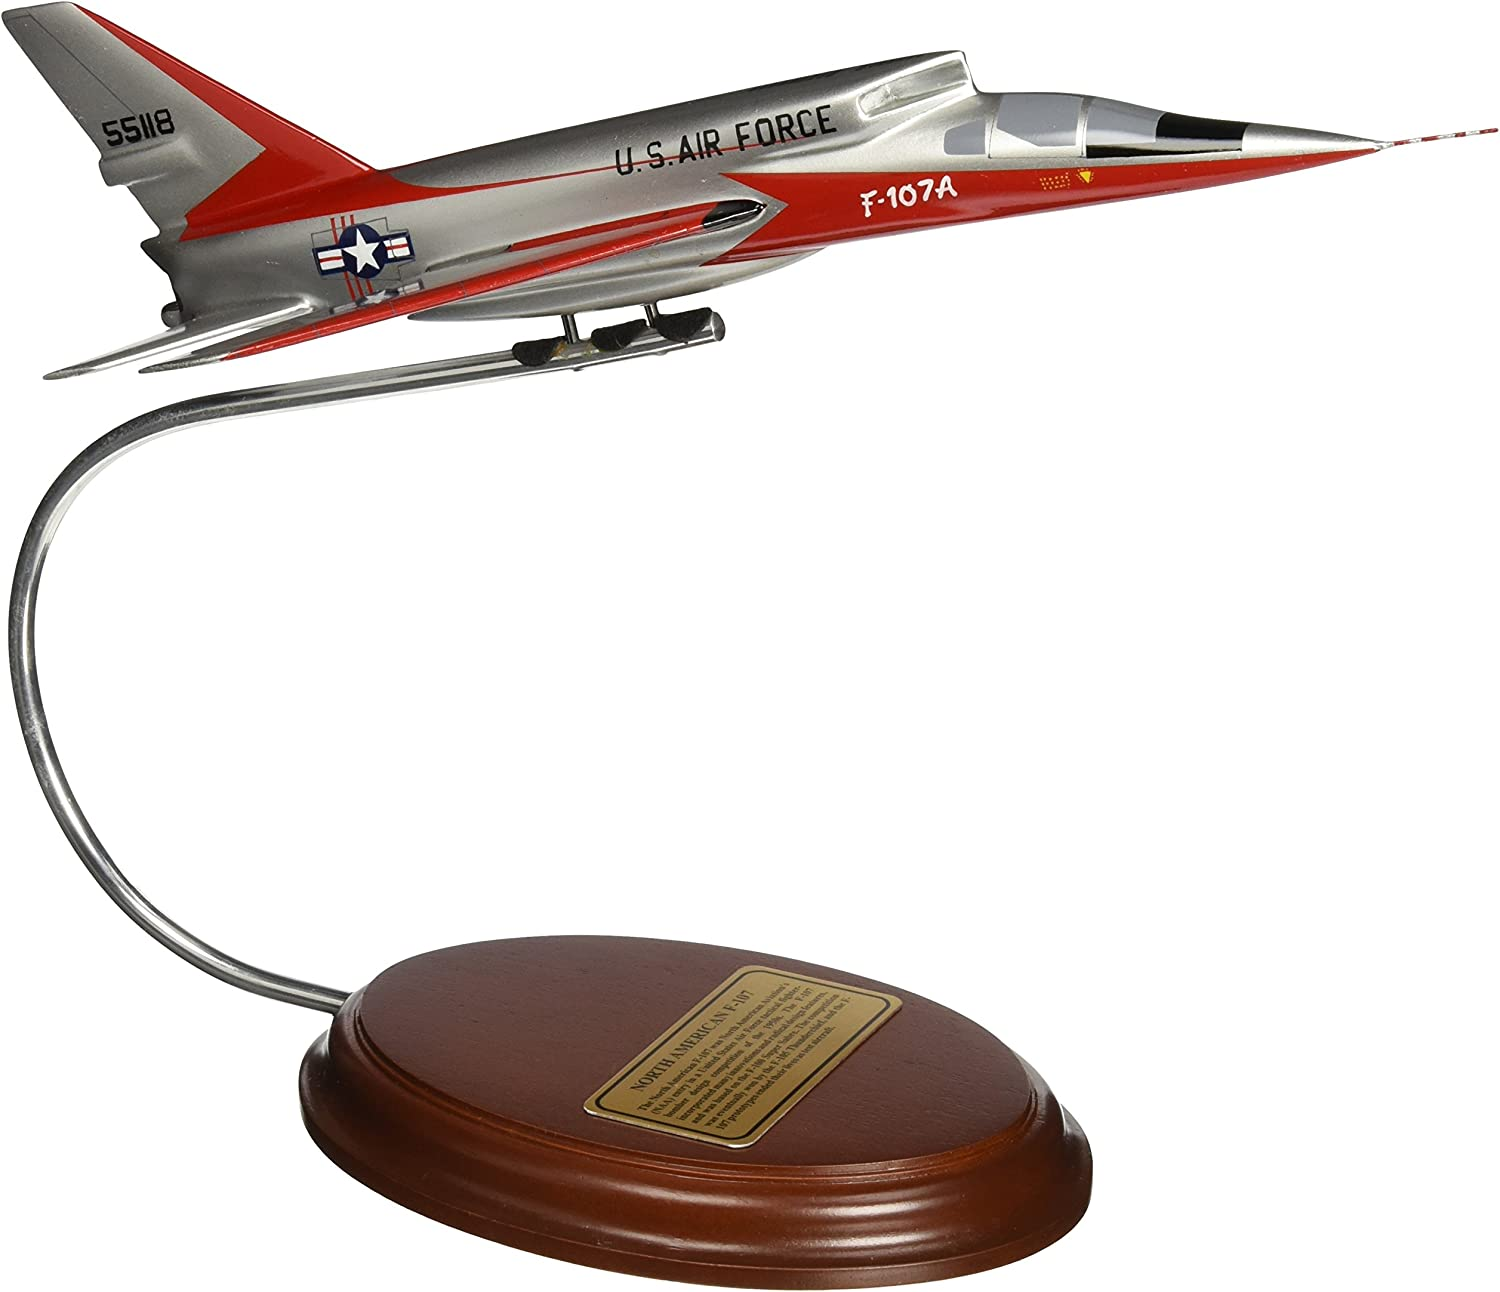 echa un vistazo a los más baratos Mastercraft Collection North American F-107 USAF Air Force Fighter Fighter Fighter Bomber Aircraft Airplane Plane Jet Model Scale  1 61  descuento